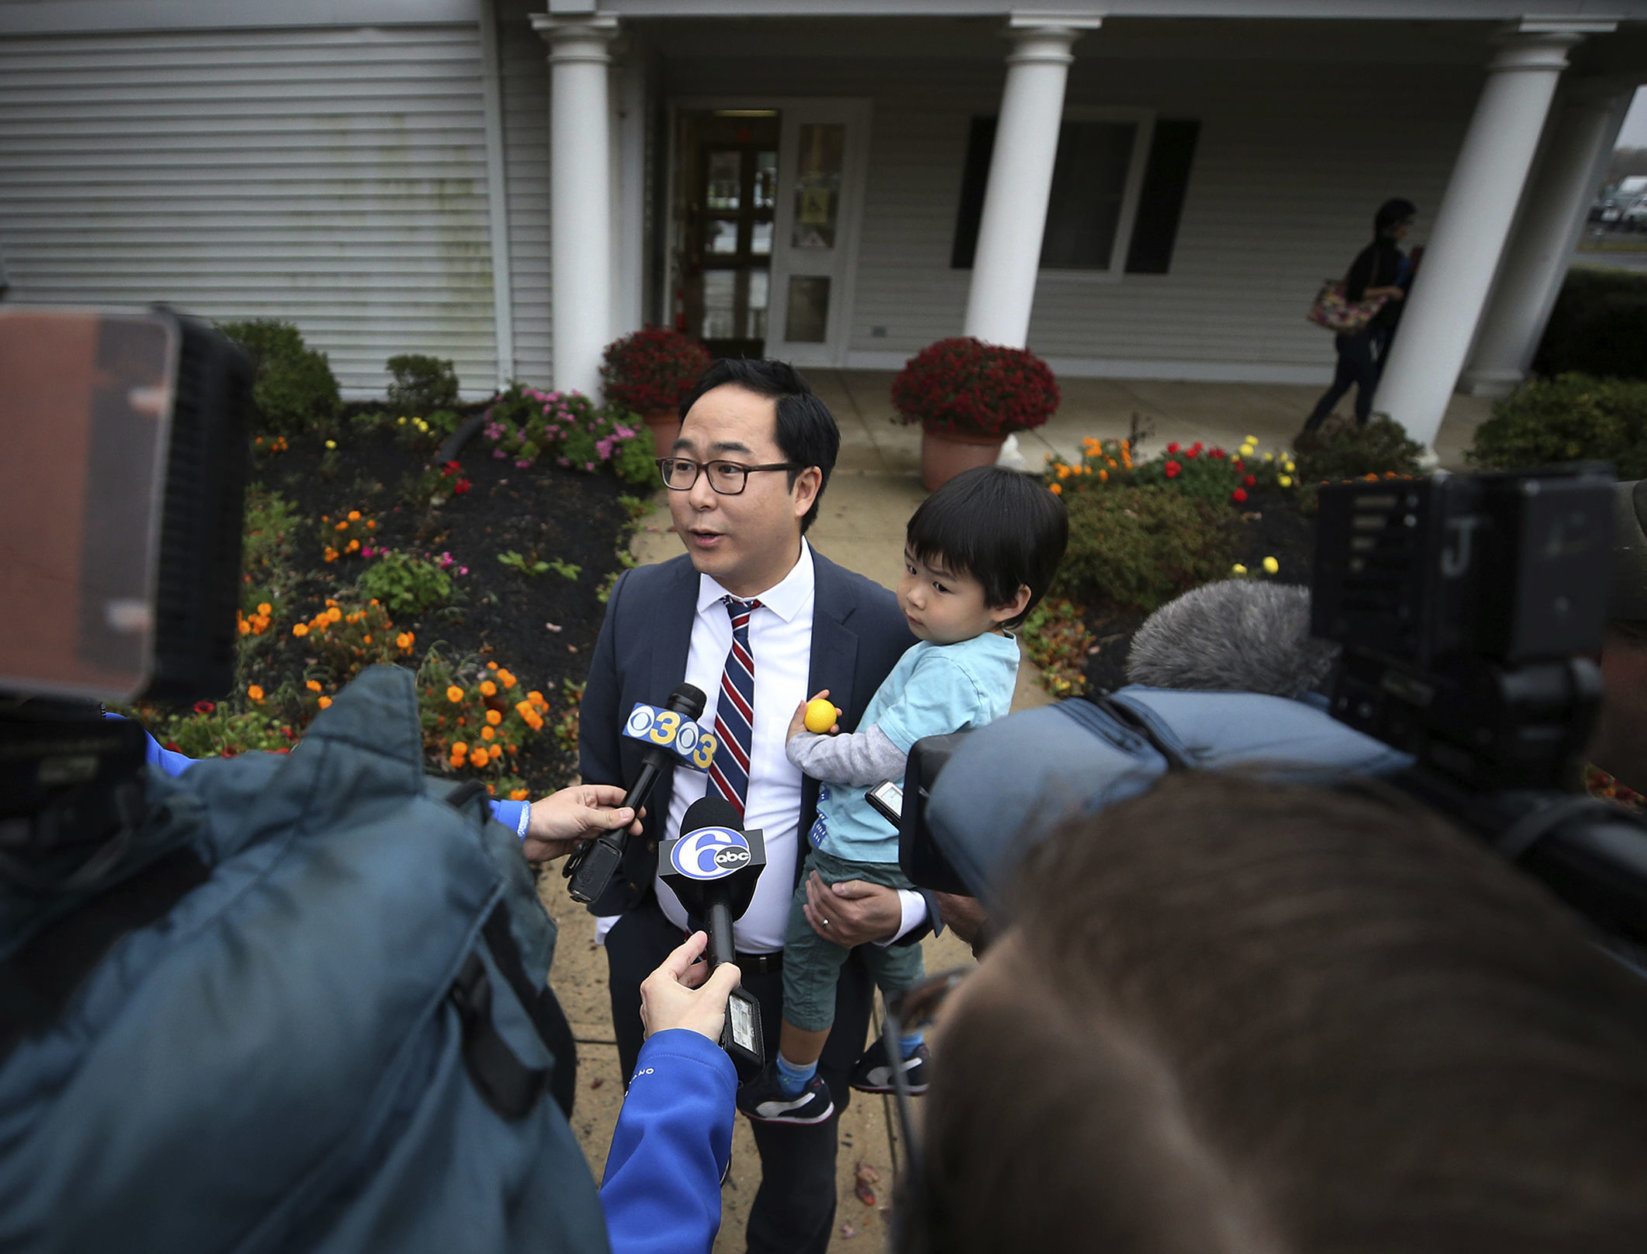 Andy Kim, the Democratic candidate in New Jersey's third Congressional District, holds his son Austin Kim, as addresses the media after voting Tuesday, Nov. 6, 2018, in Bordentown, N.J. Kim is facing Tom MacArthur, the Republican incumbent candidate in New Jersey's third Congressional District. (AP Photo/Mel Evans)